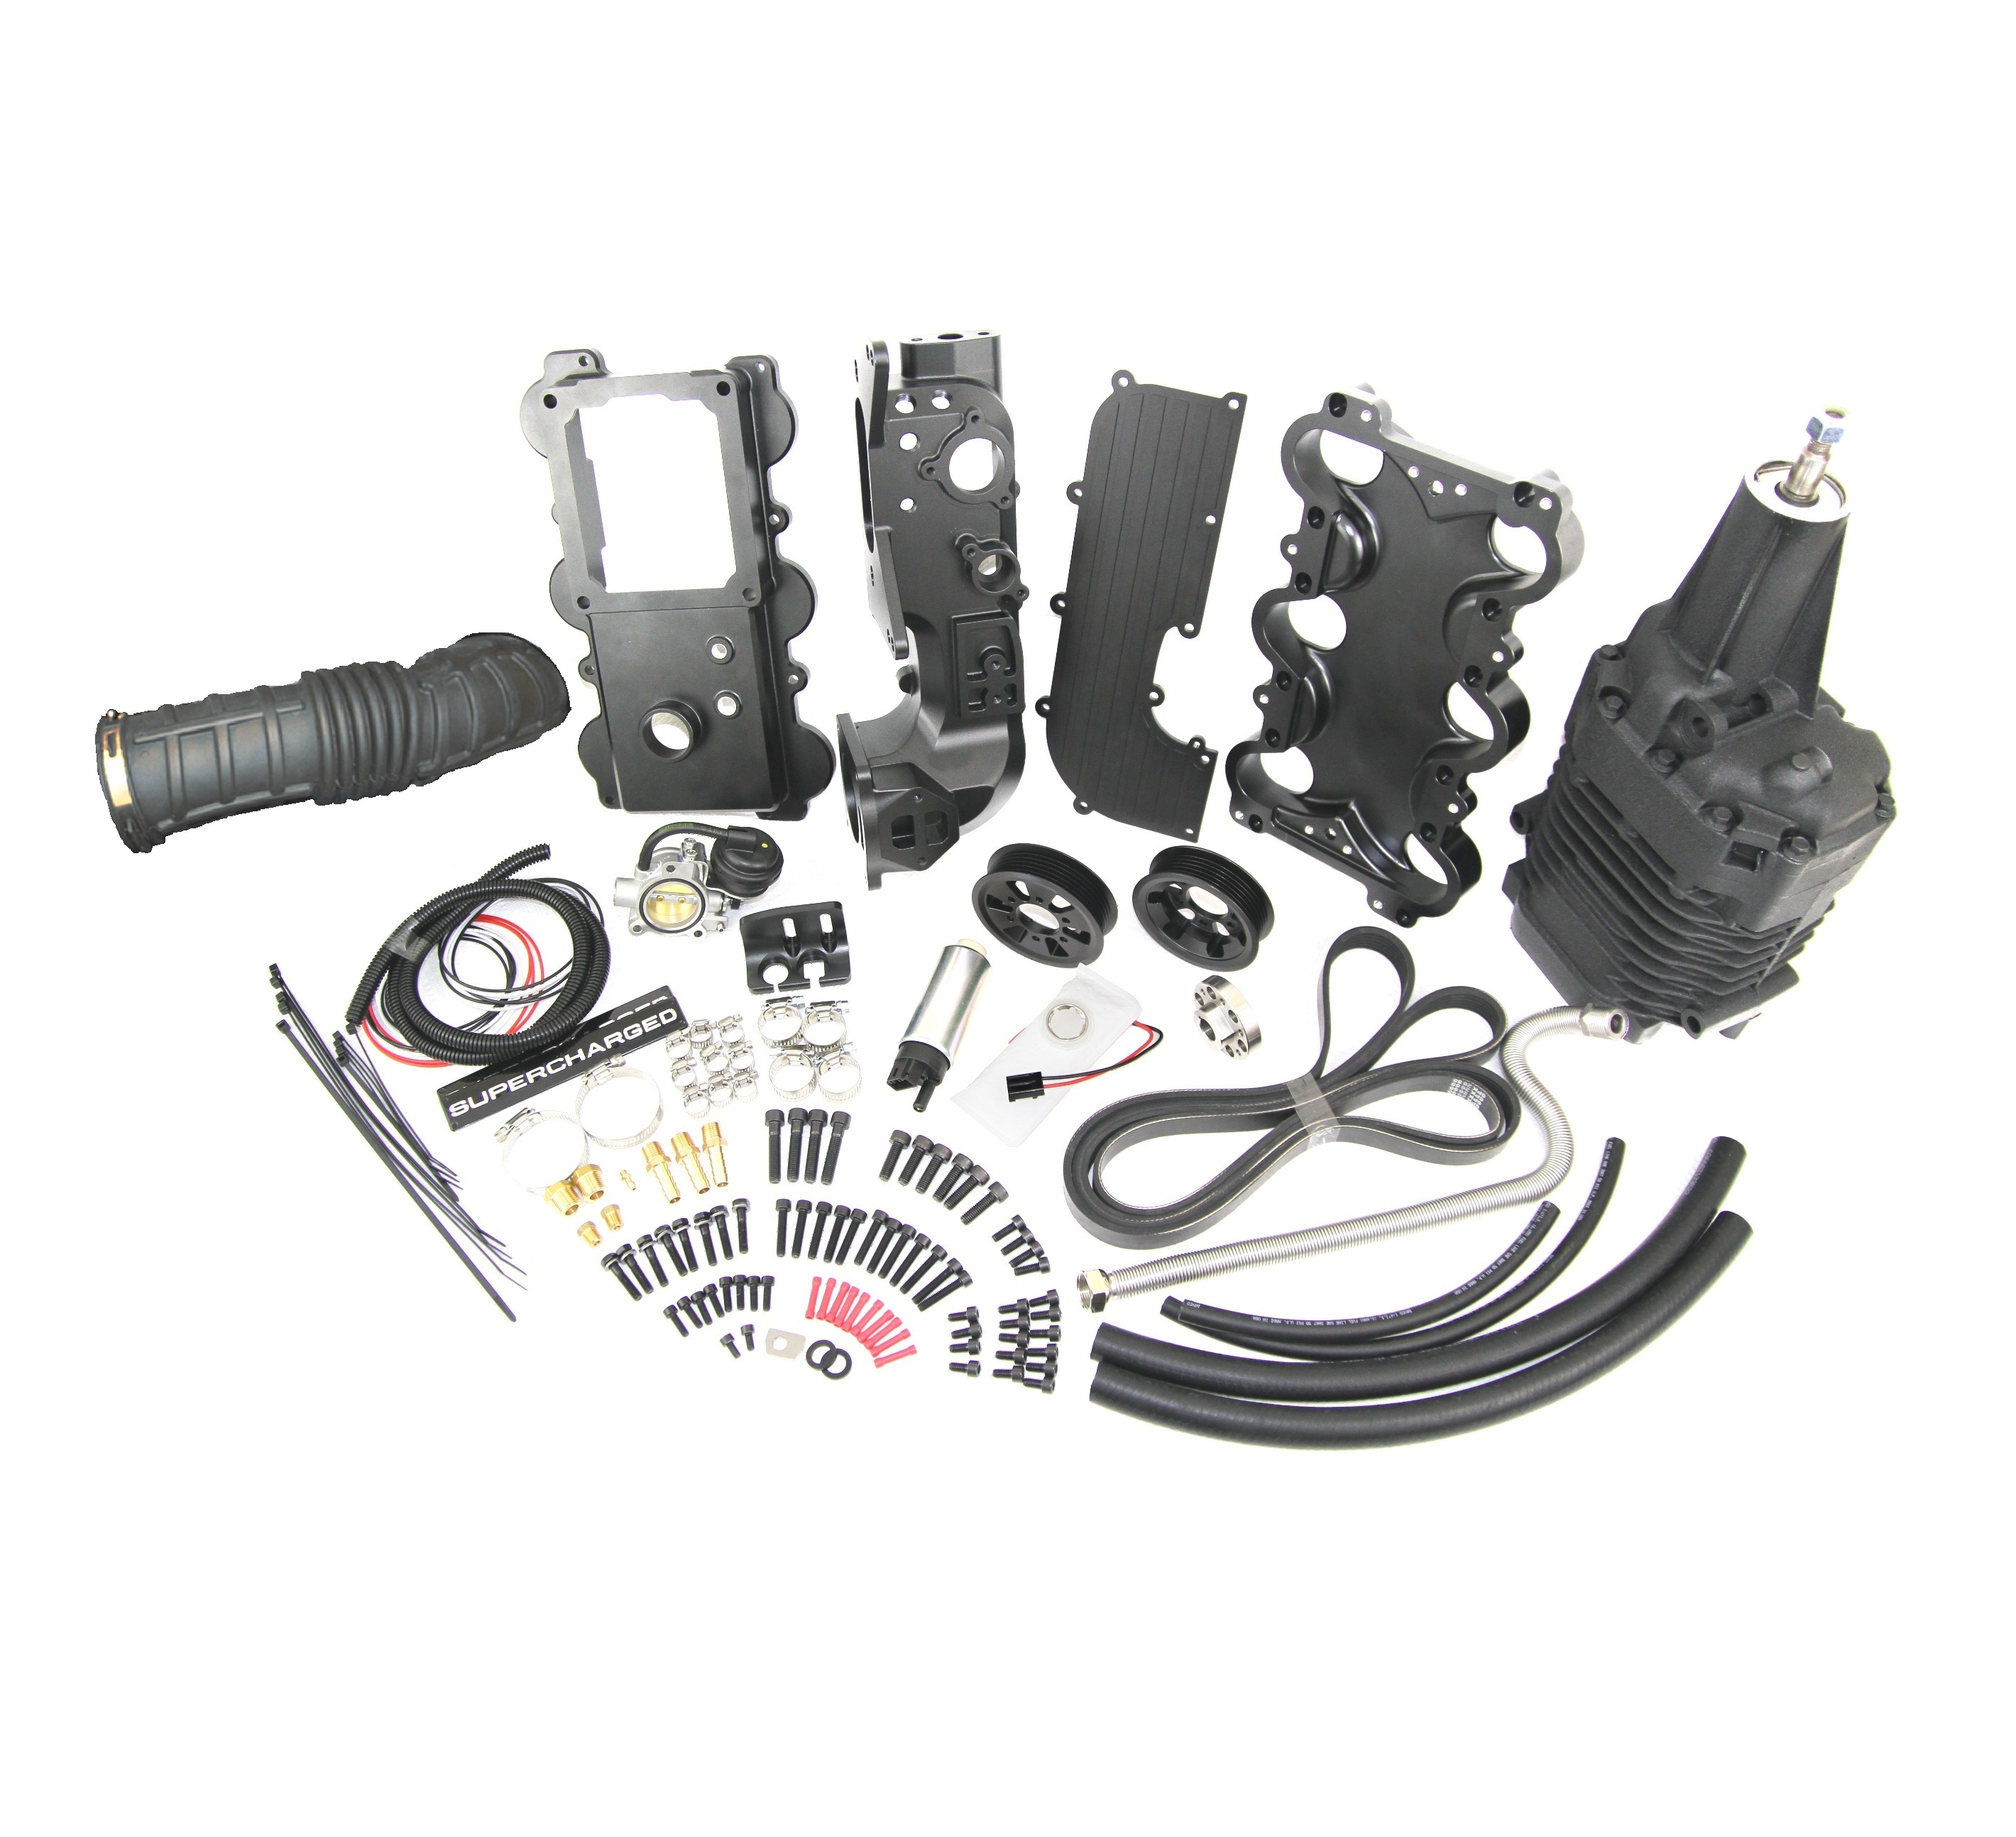 Mustang V6 Turbo Kits: Ford Mustang Electric Supercharger Bolt-on Kit